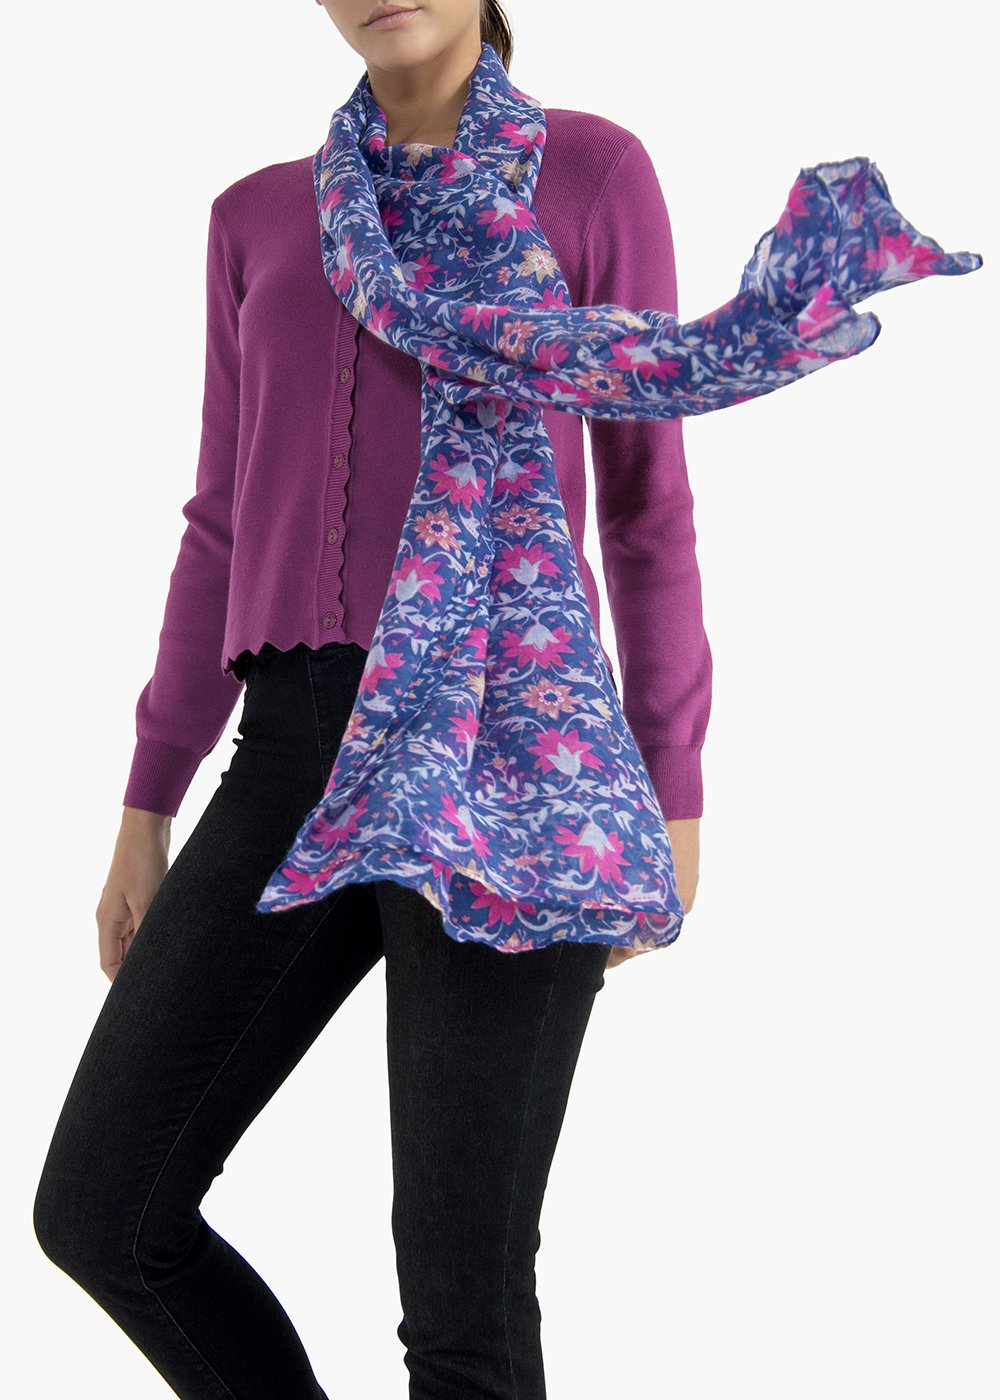 Sybil scarf with flower print - Avion / Floreale Fantasia - Woman